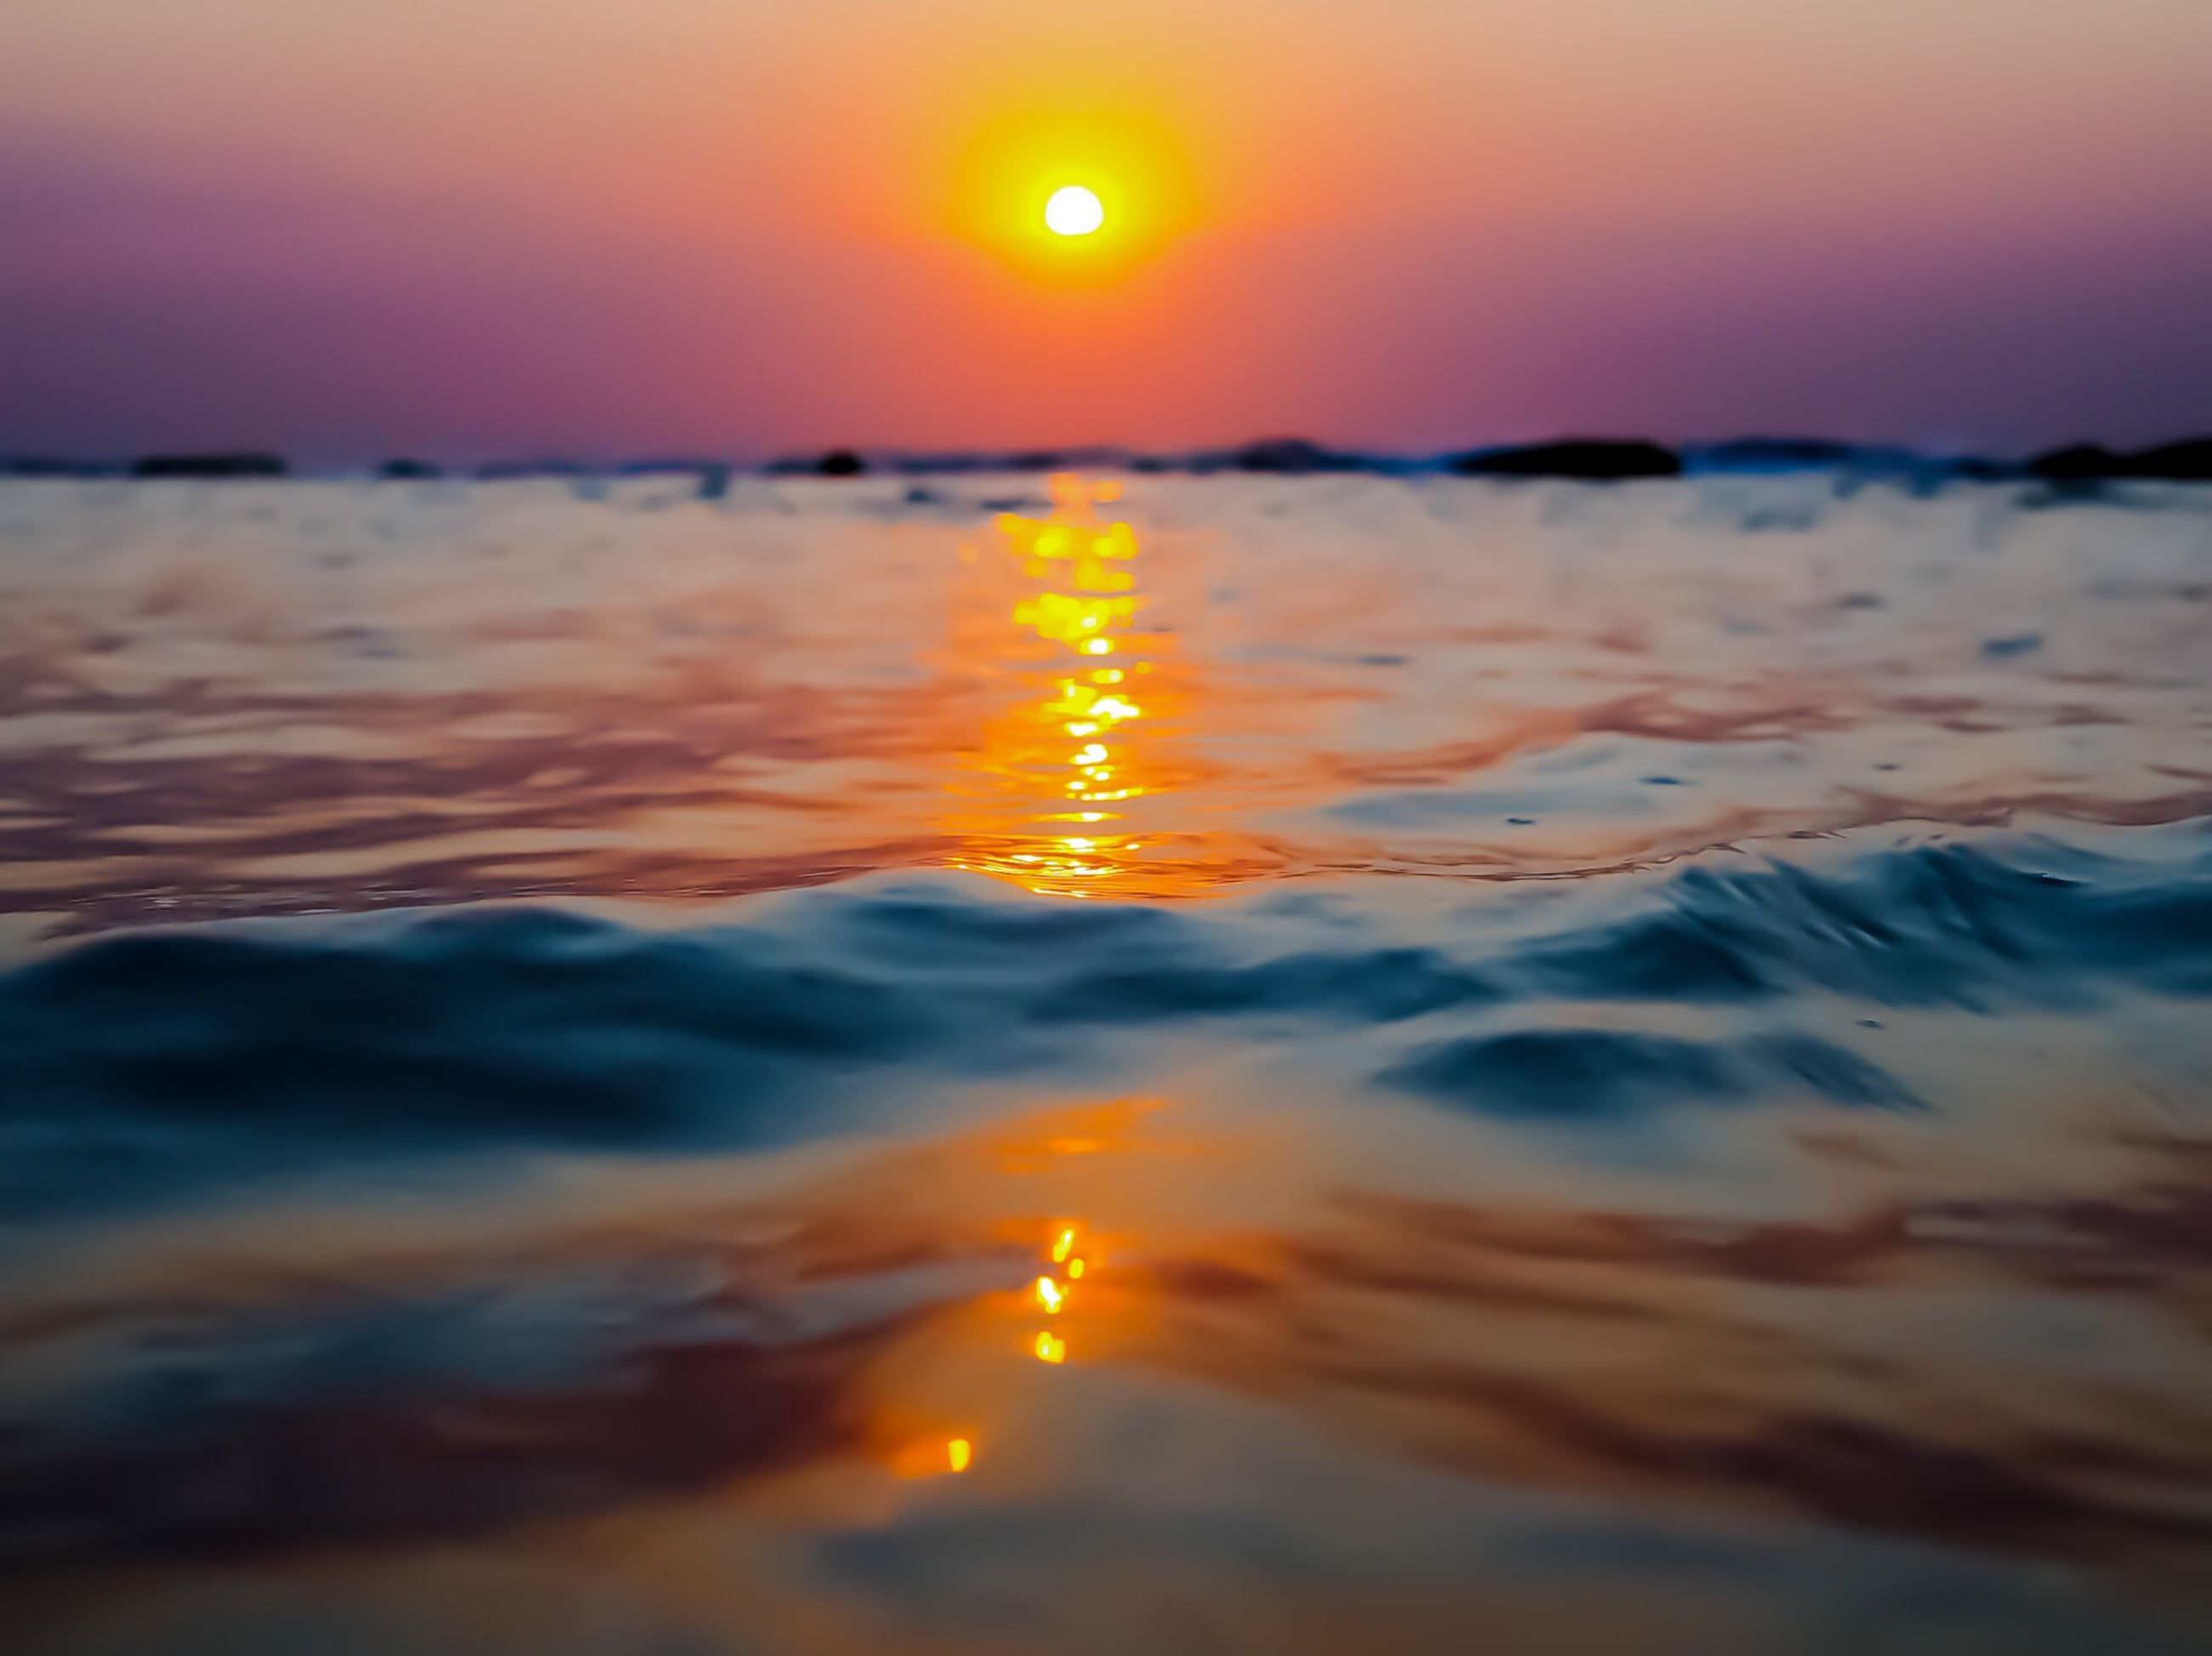 sunset, sky, water, beauty in nature, orange color, scenics - nature, sea, tranquility, idyllic, no people, cloud - sky, tranquil scene, nature, sun, waterfront, outdoors, motion, horizon over water, horizon, surface level